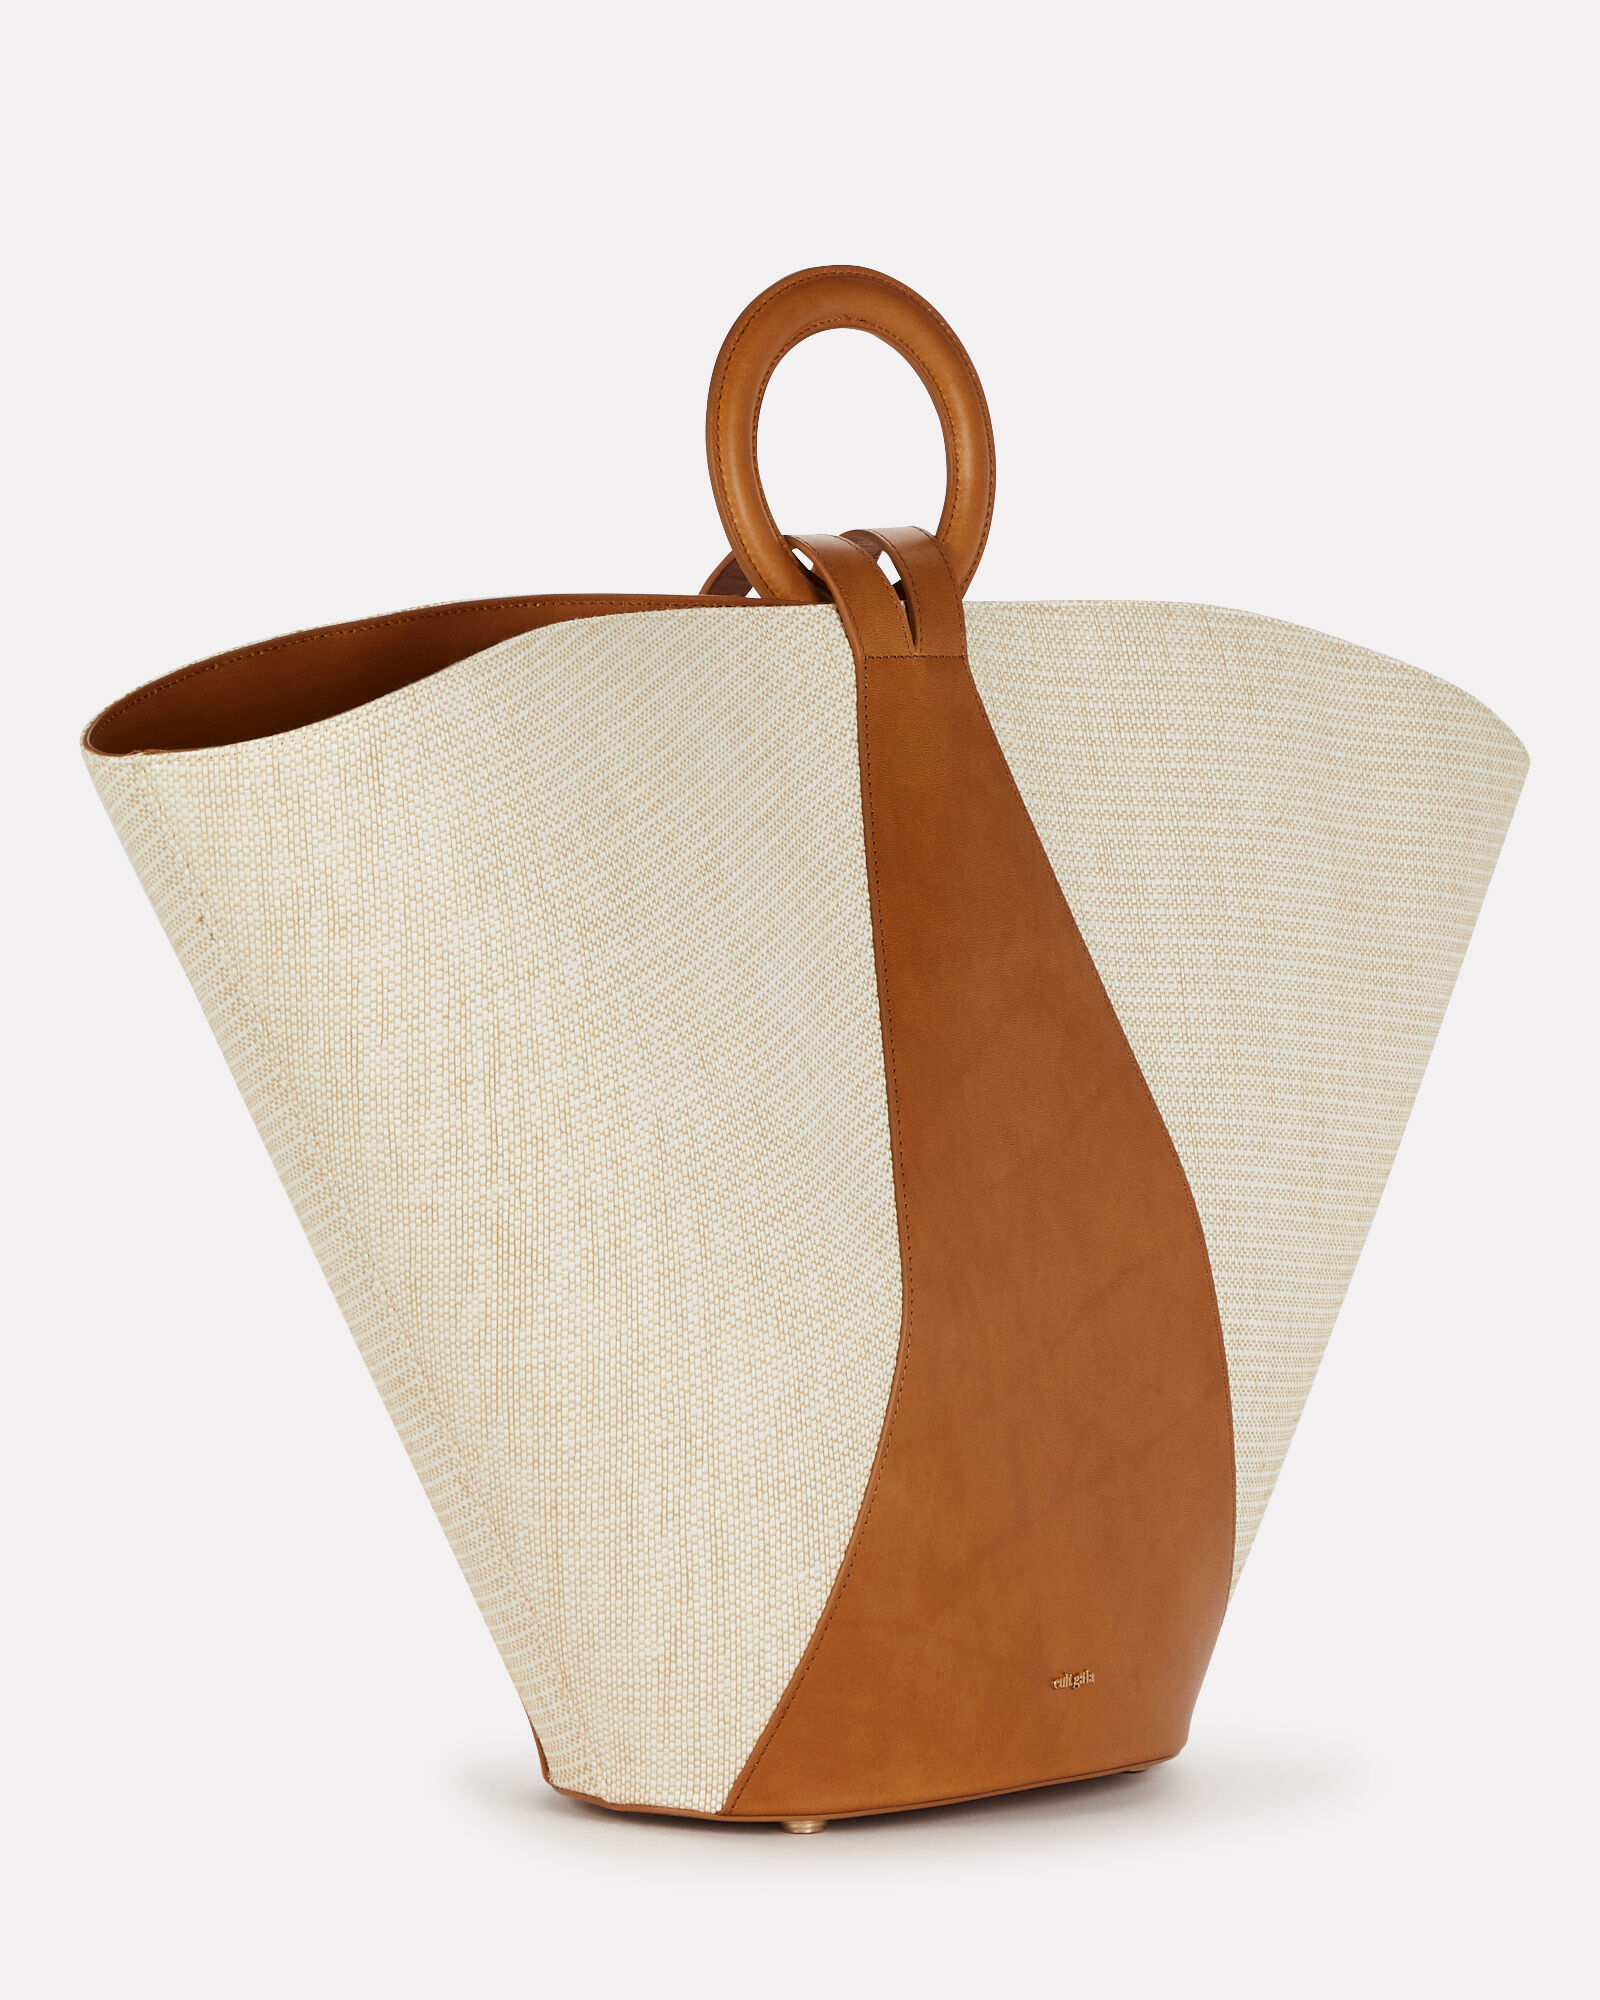 Roksana Large Beach Tote, BEIGE/BROWN, hi-res